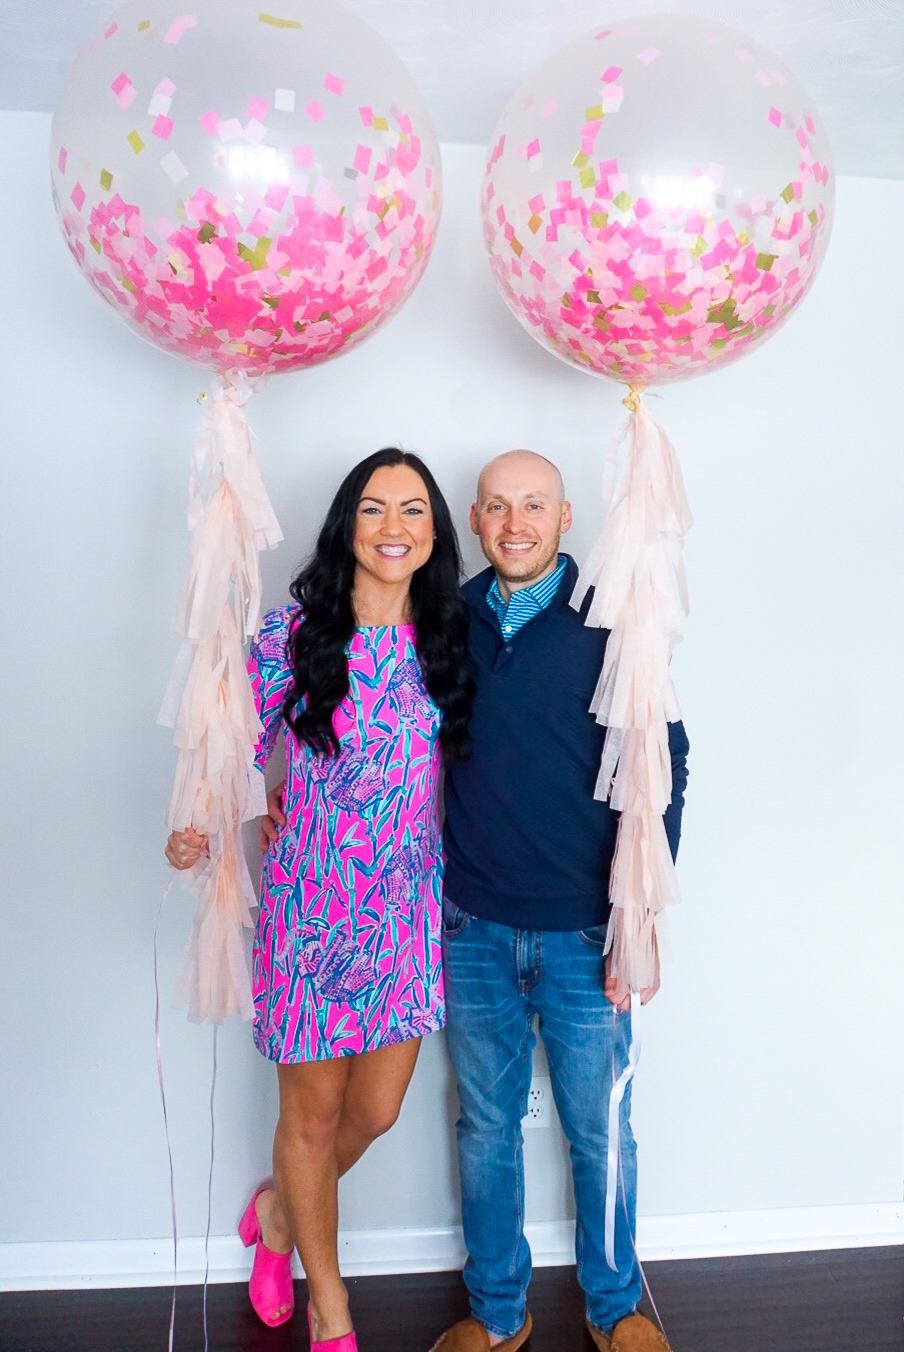 pregnant Lilly Pulitzer, giant pink balloons, giant confetti balloons, pink confetti balloons, pink tassel balloons